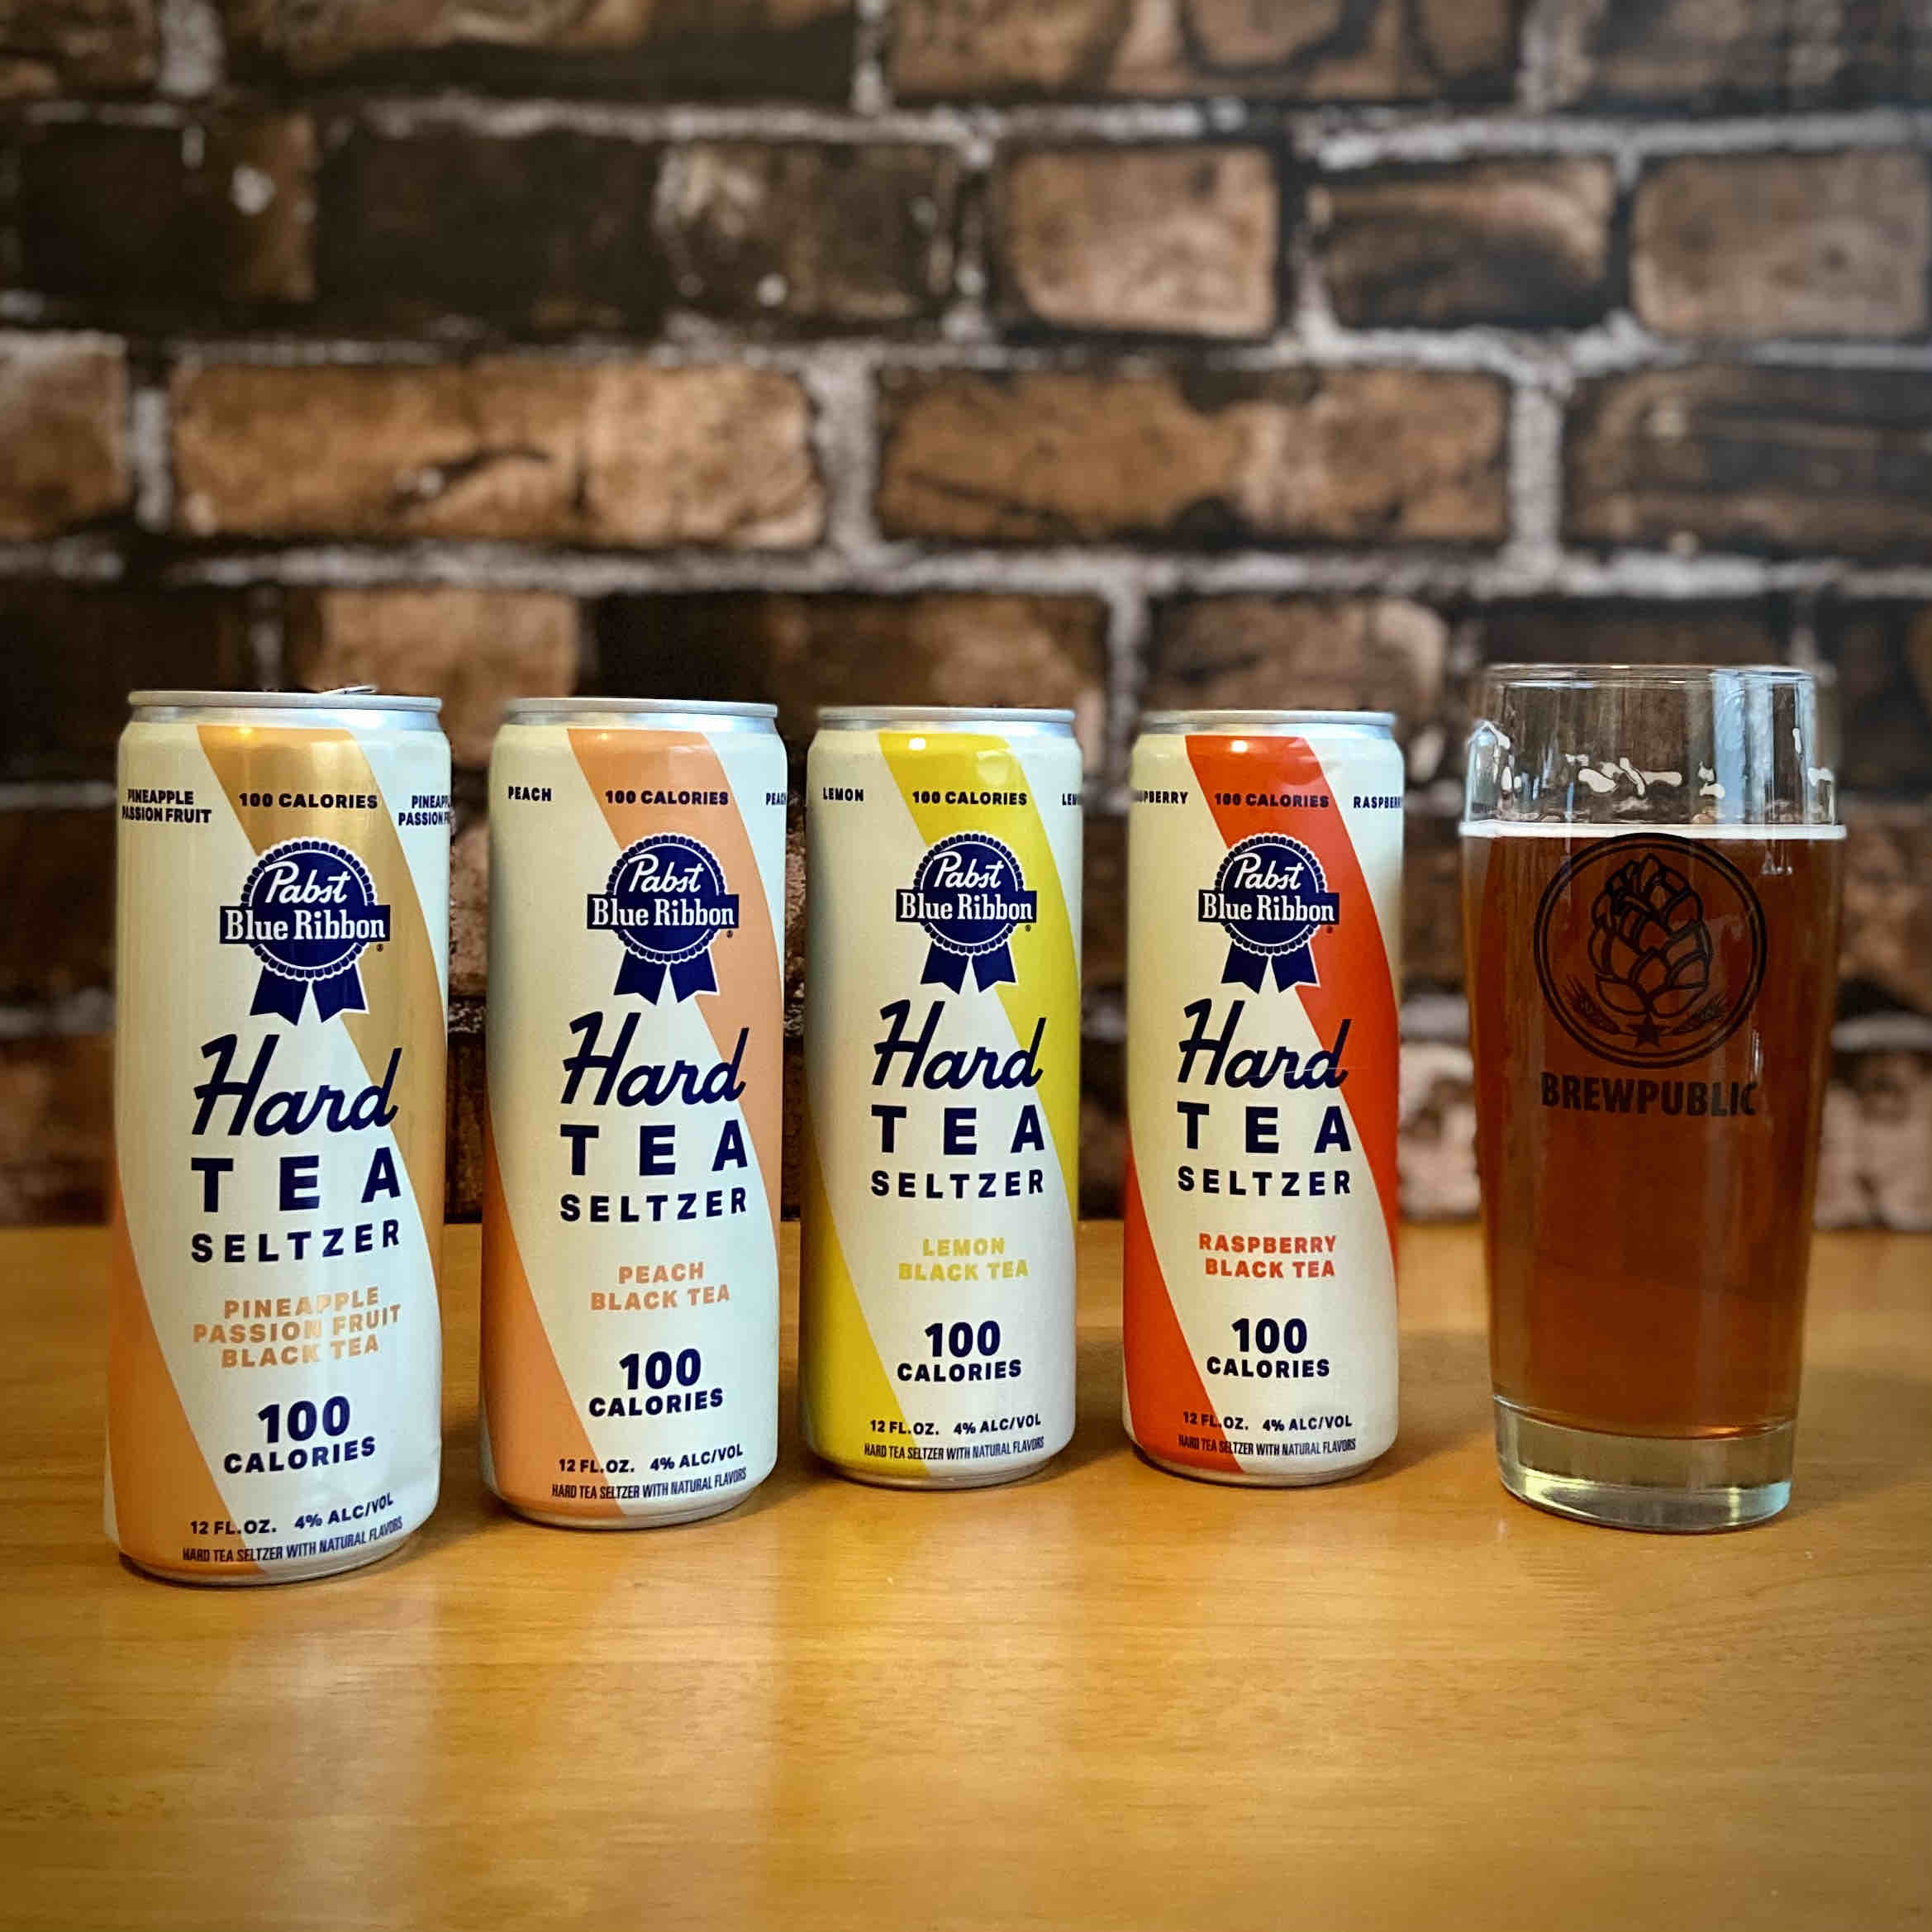 Pabst Blue Ribbon Hard Tea Seltzer comes in four flavors - Pineapple-Passionfruit Black Tea, Peach Black Tea, Lemon Black Tea, and Raspberry Black Tea